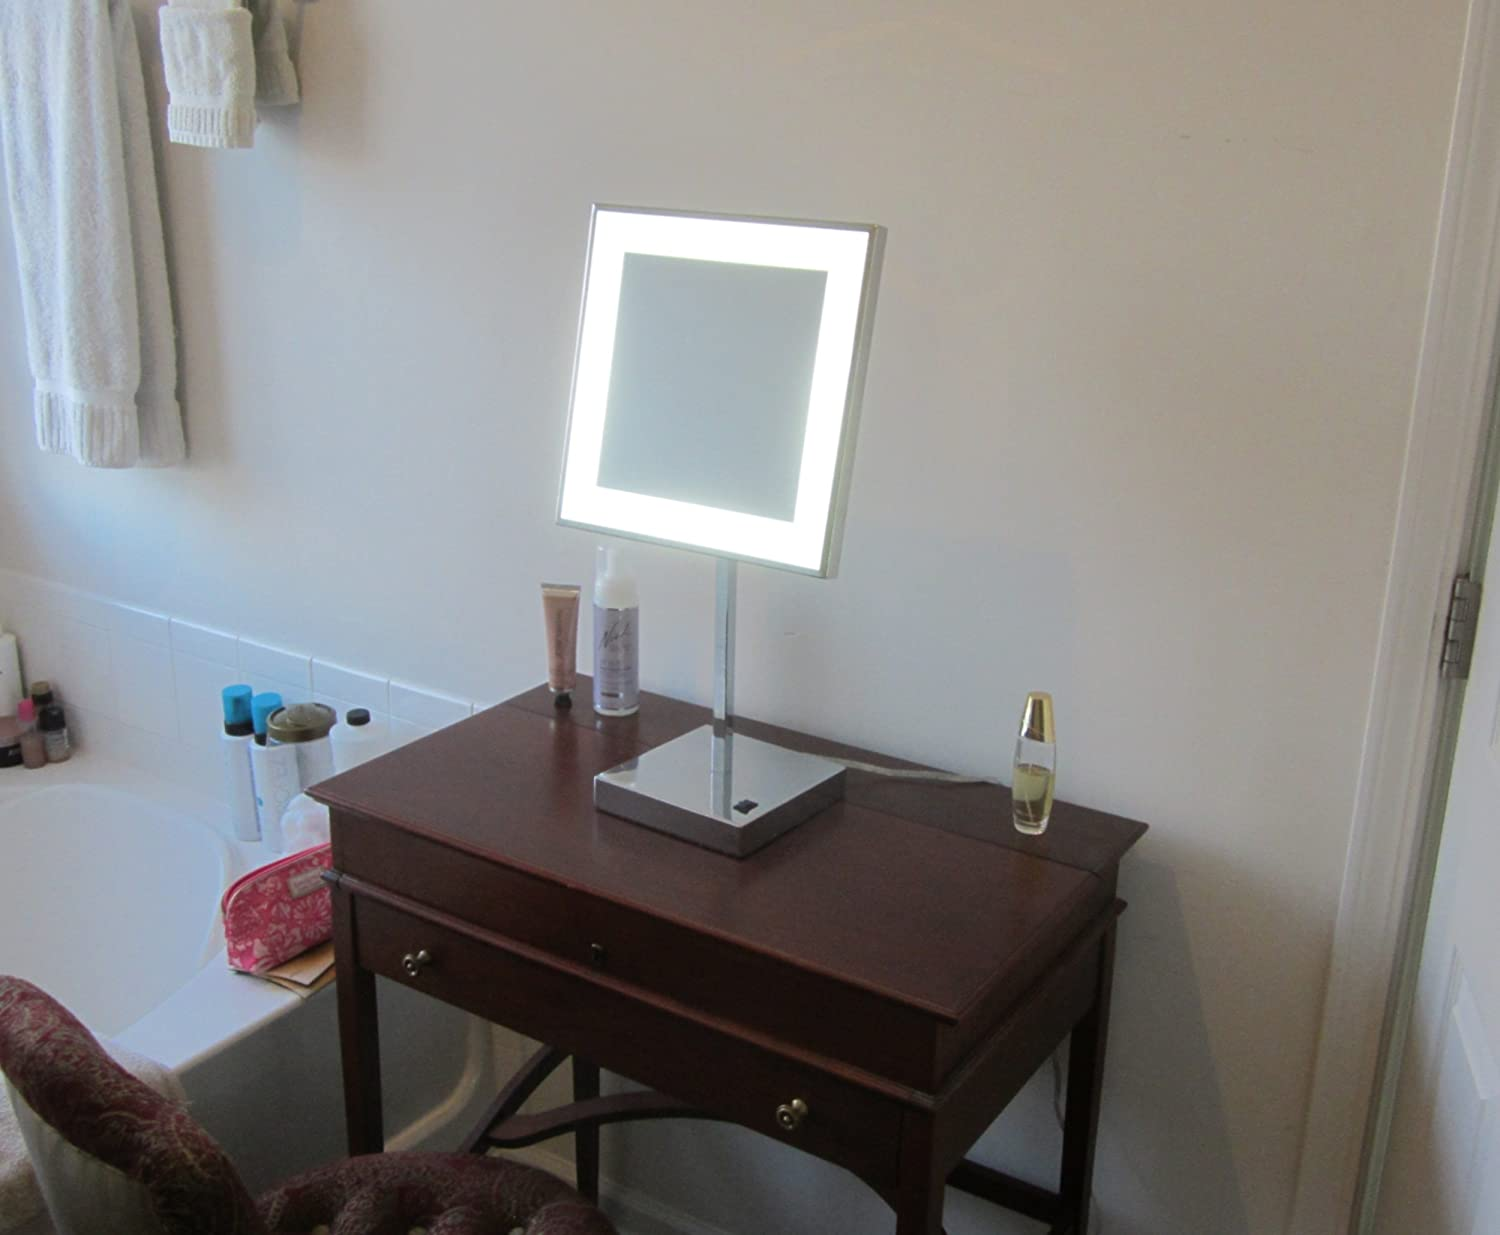 Amazon: Lighted Makeup Mirror - MAM-12VM -12